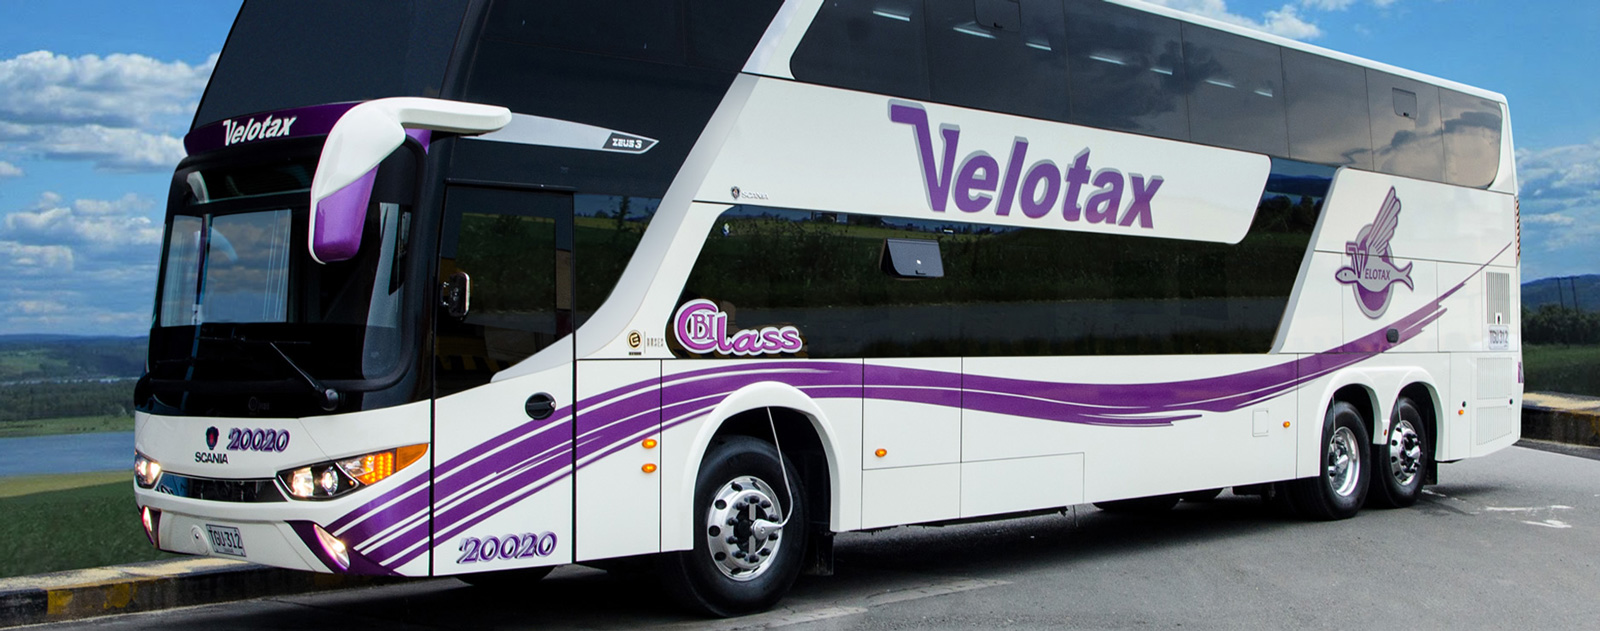 velotax bus colombia